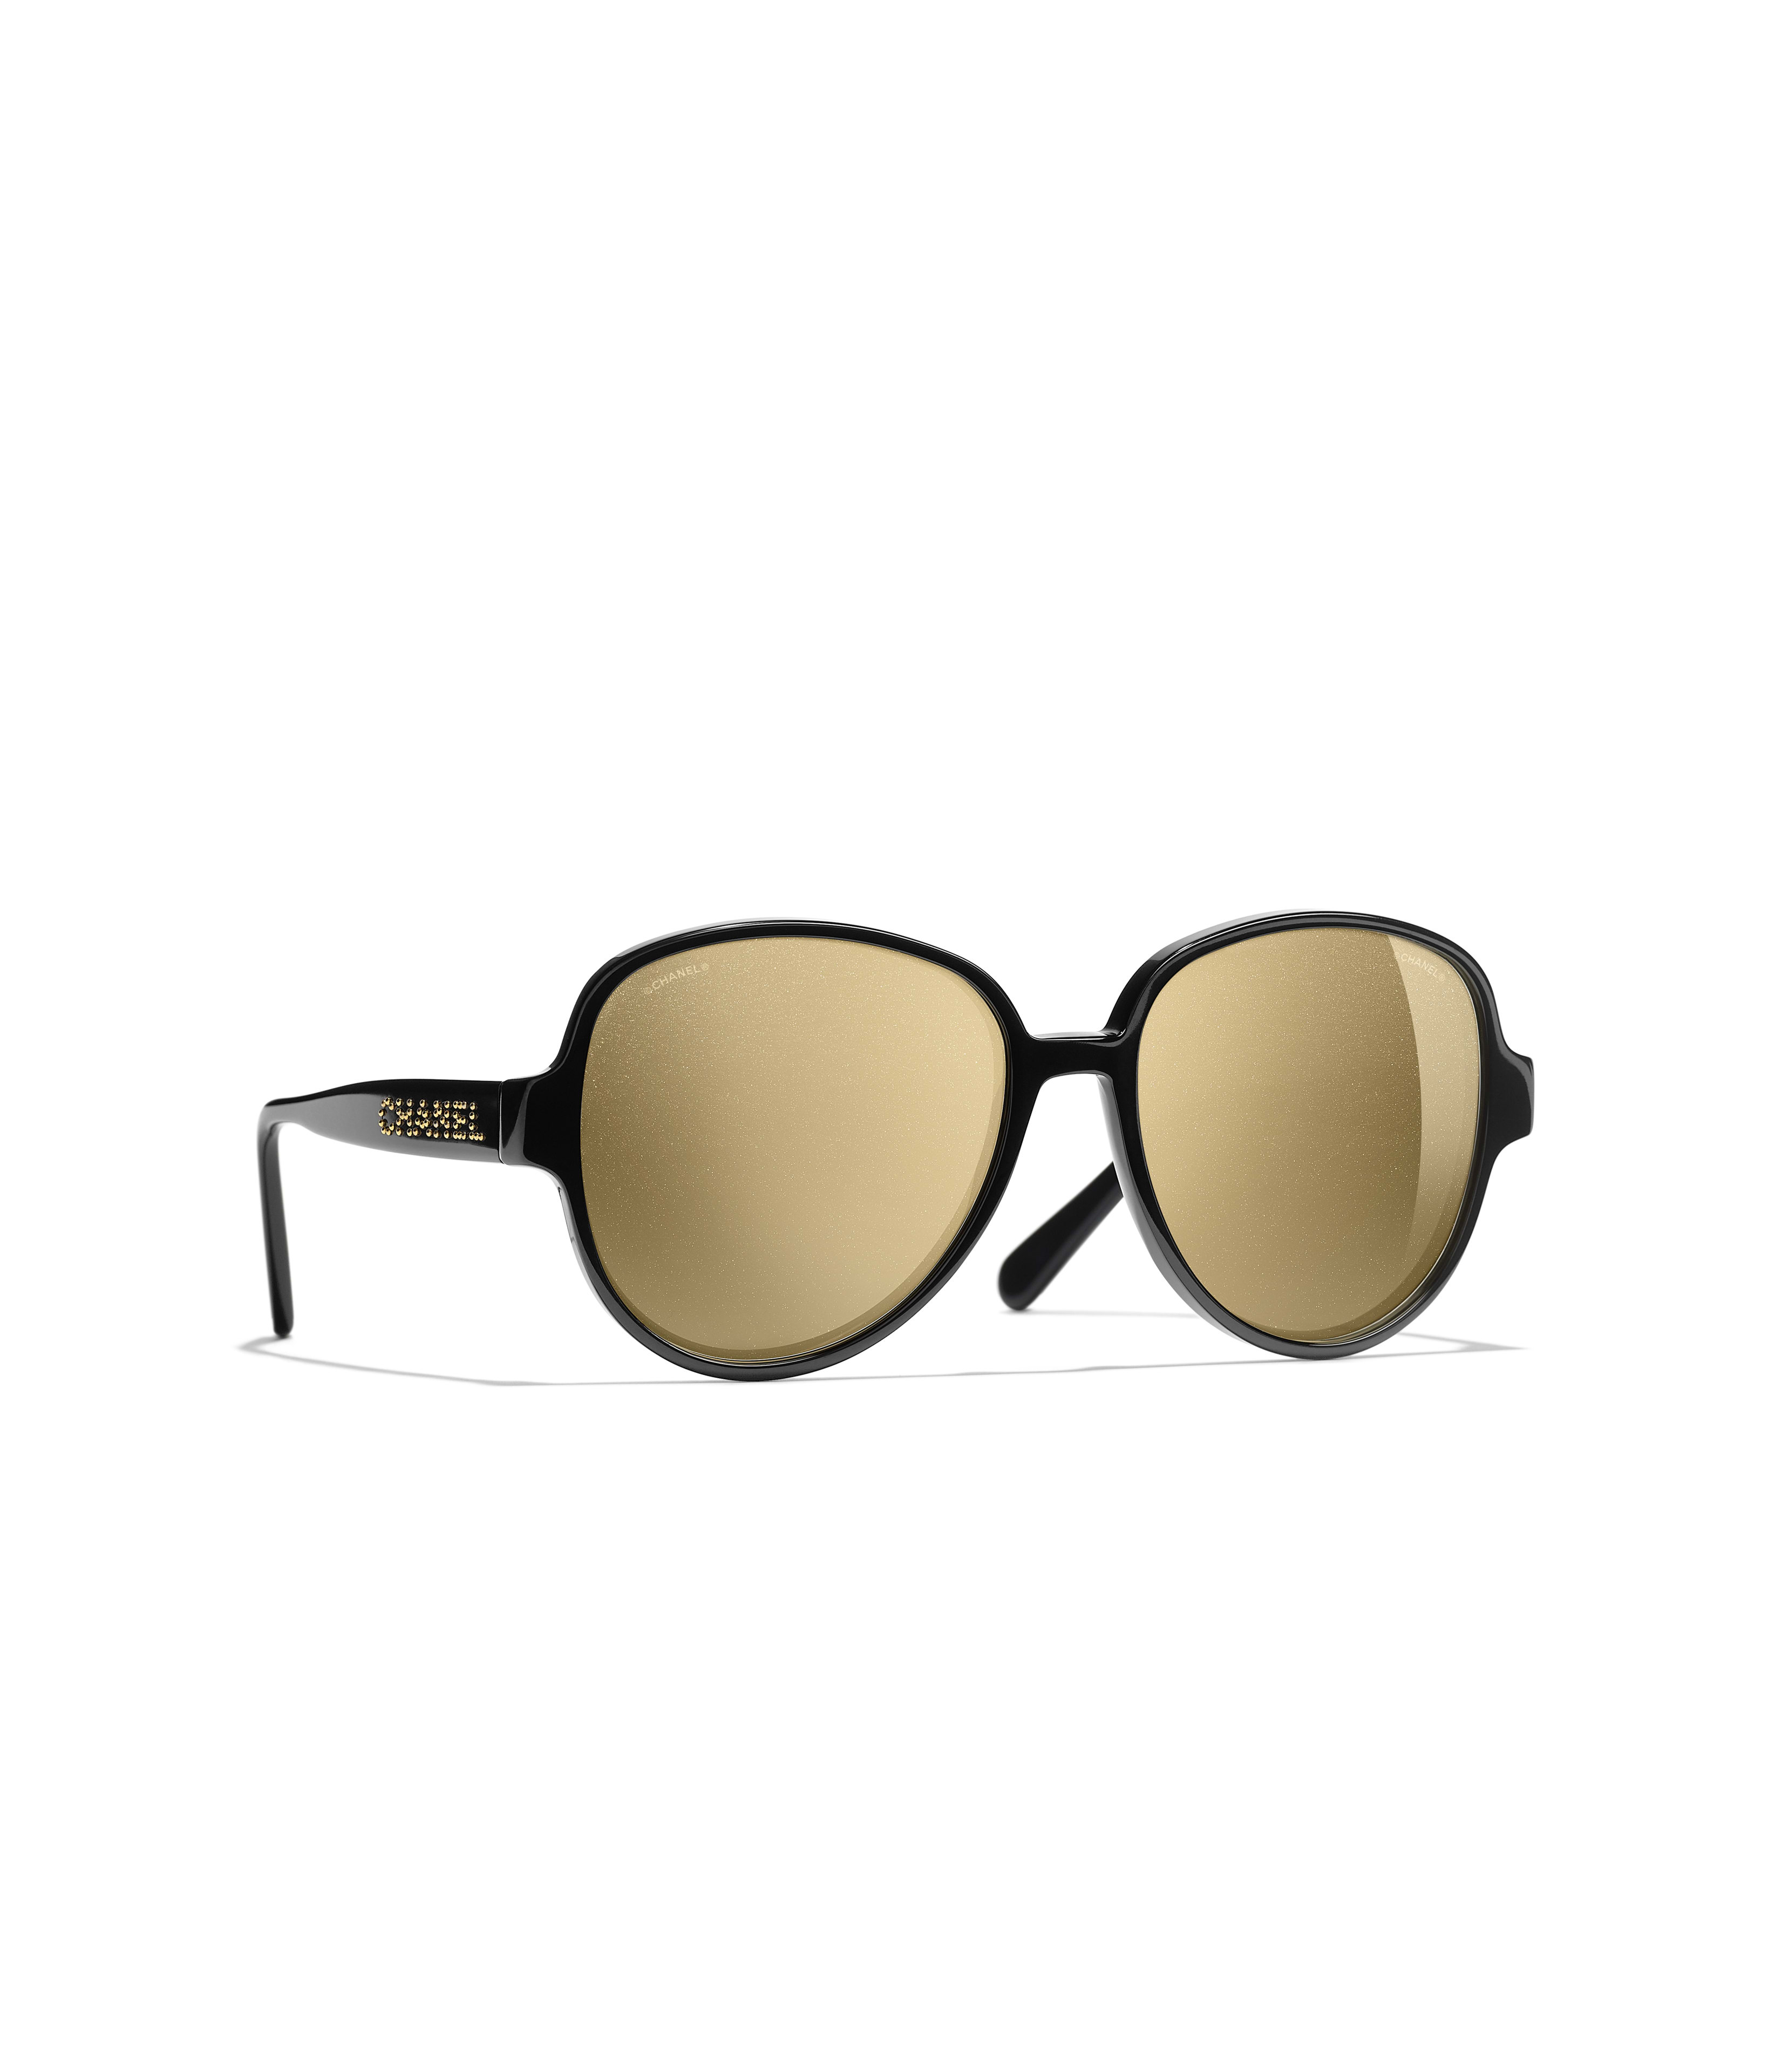 6e2620626c6 Sunglasses - CHANEL